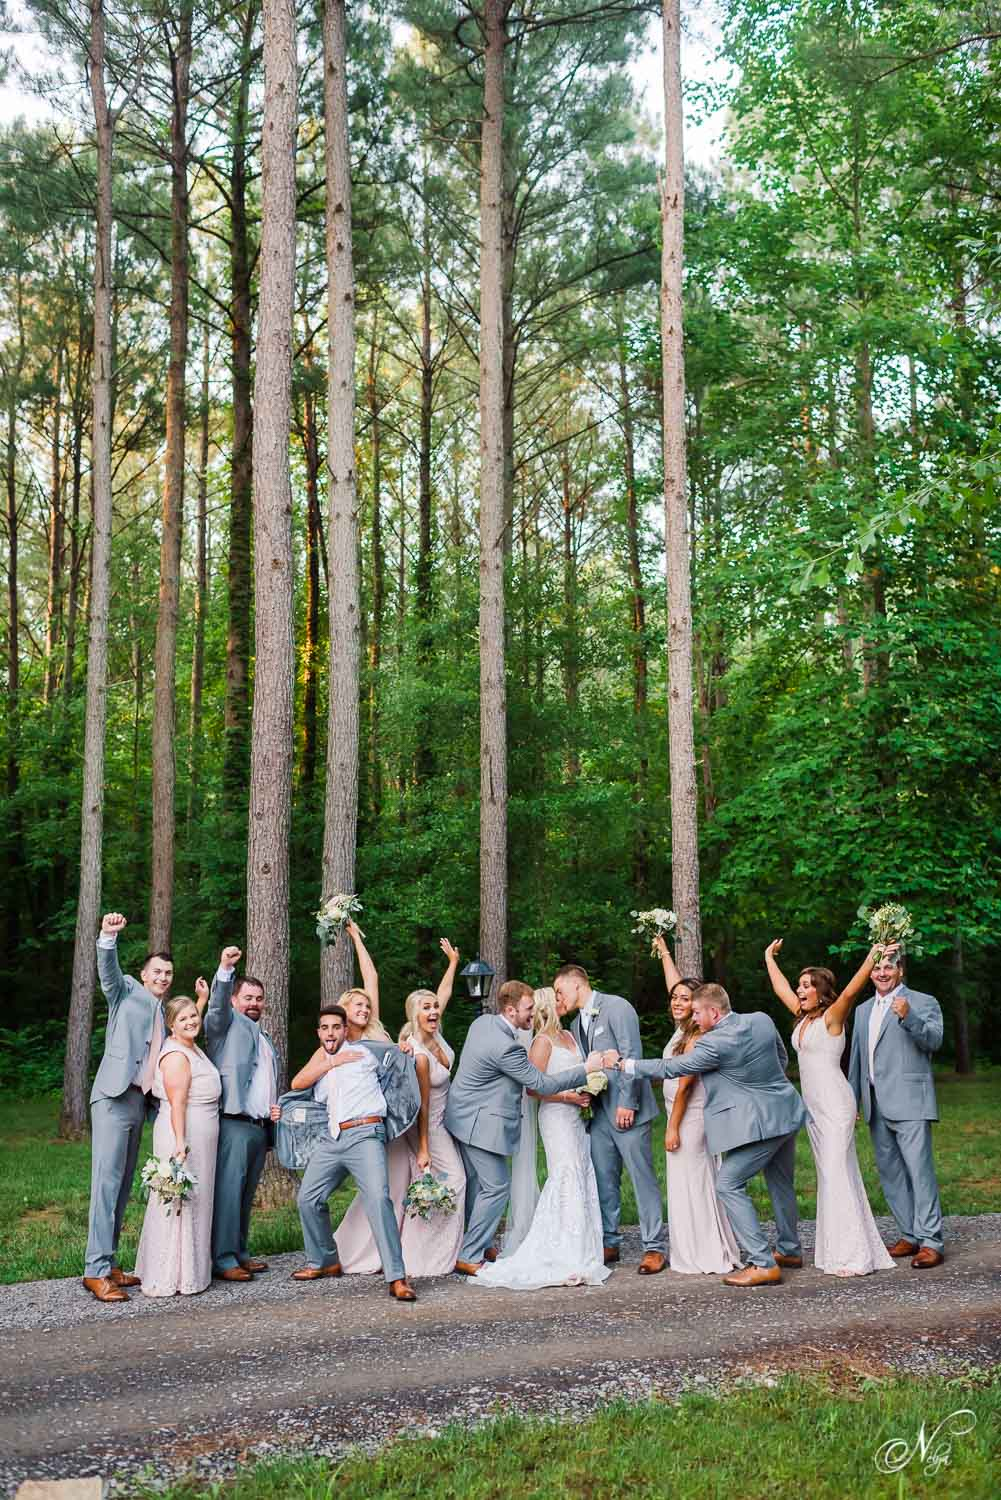 fun wedding party pose with 13 people